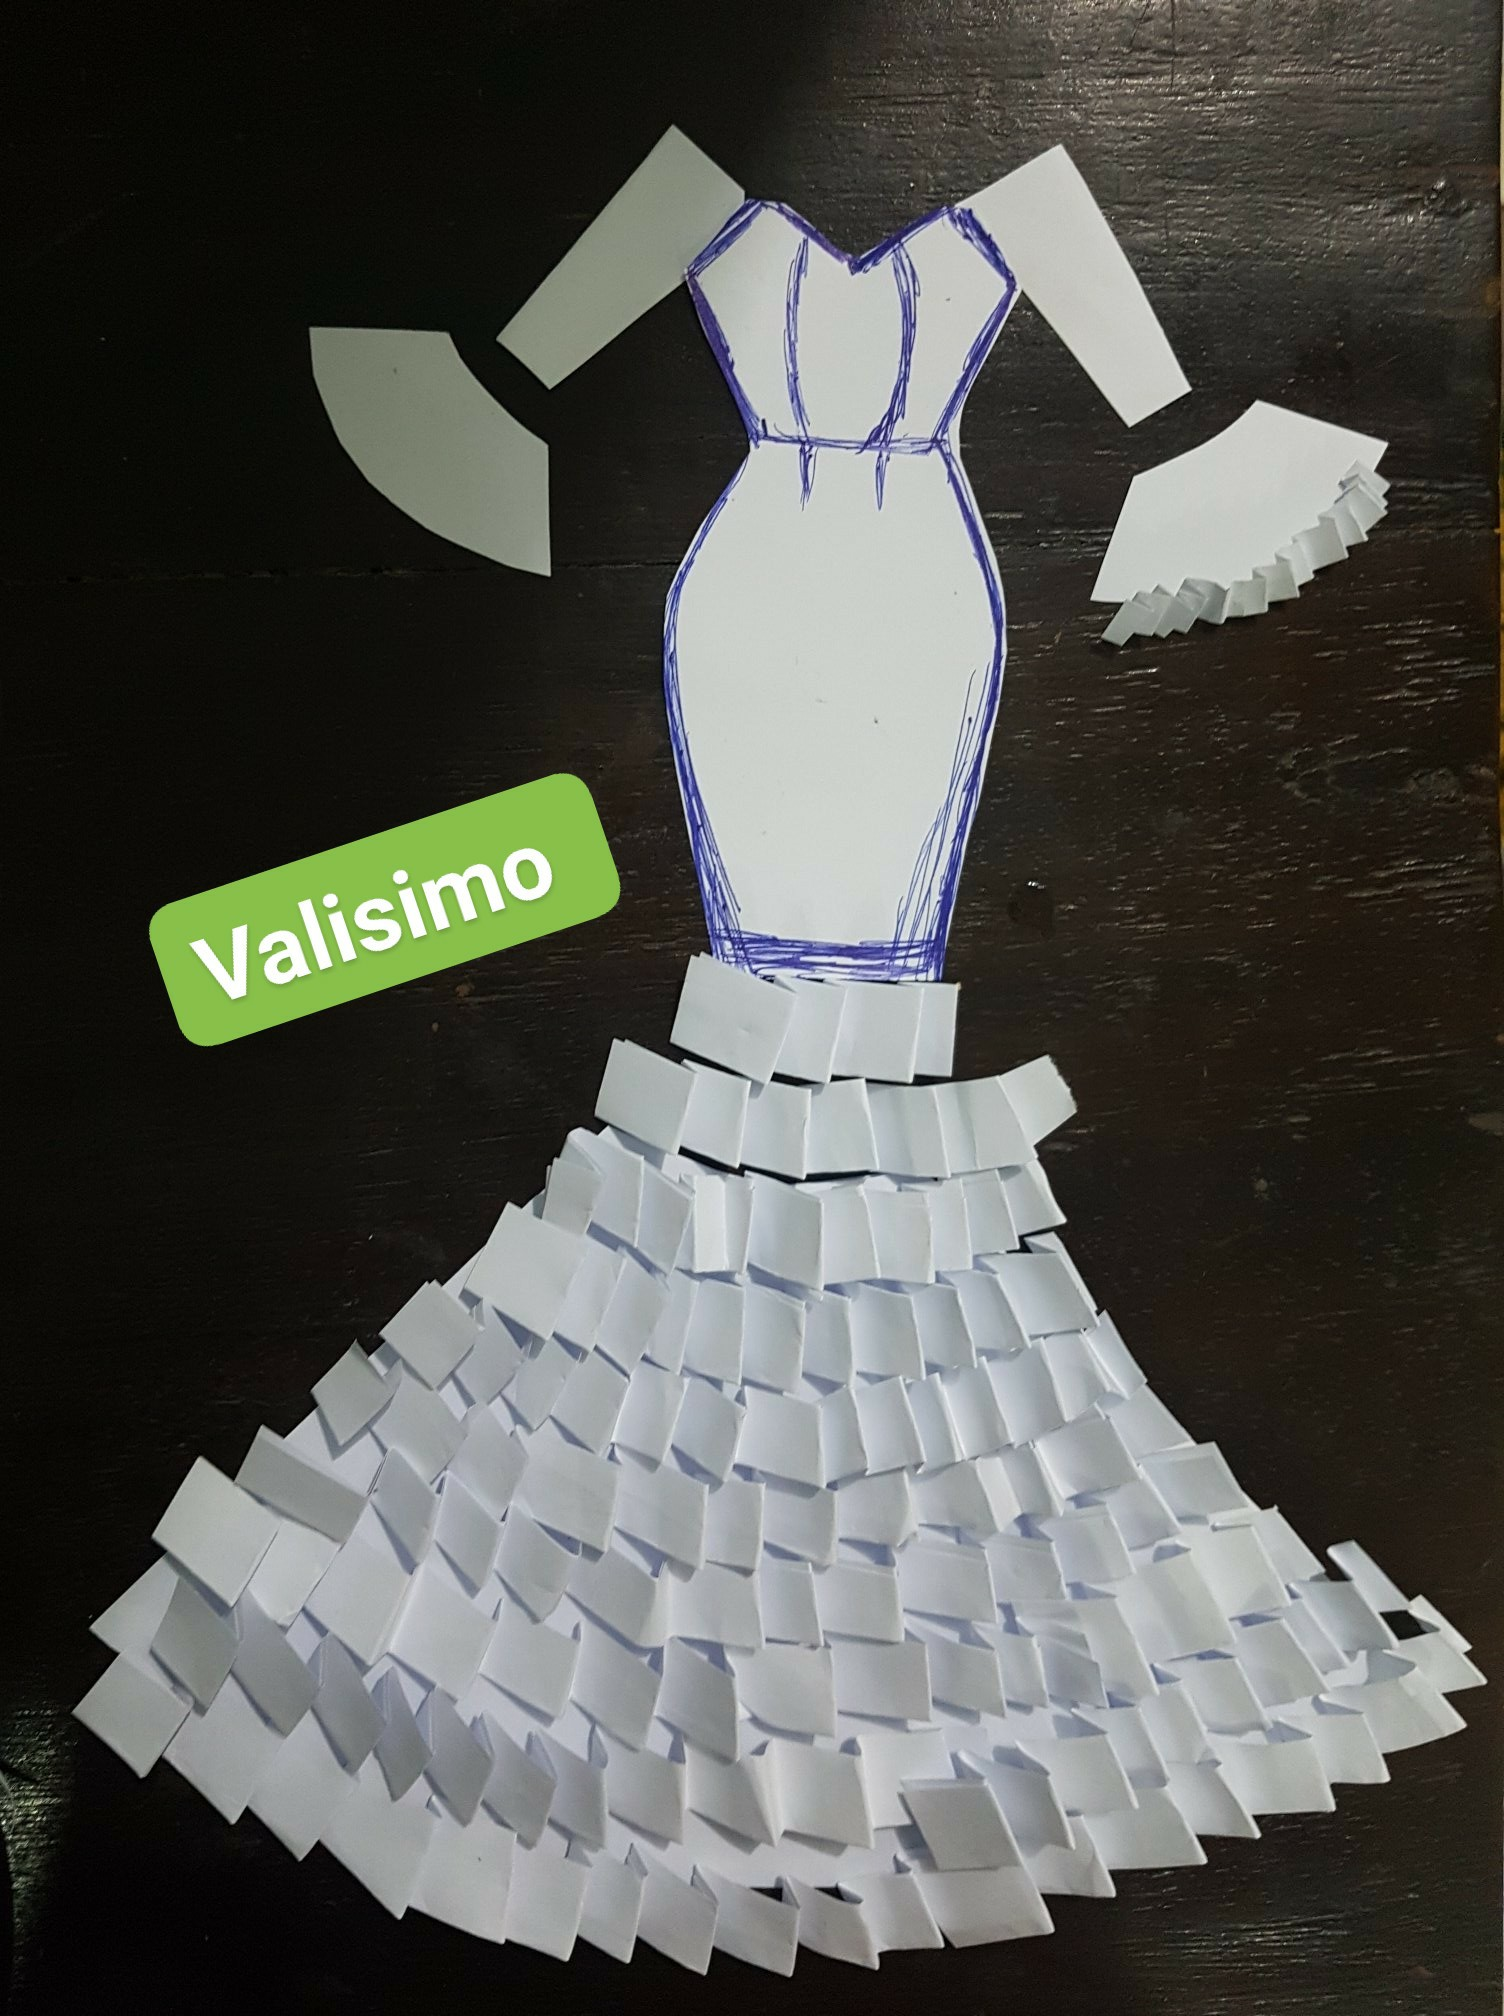 Pleated detailed dress illustrations (credited to facebook picture)